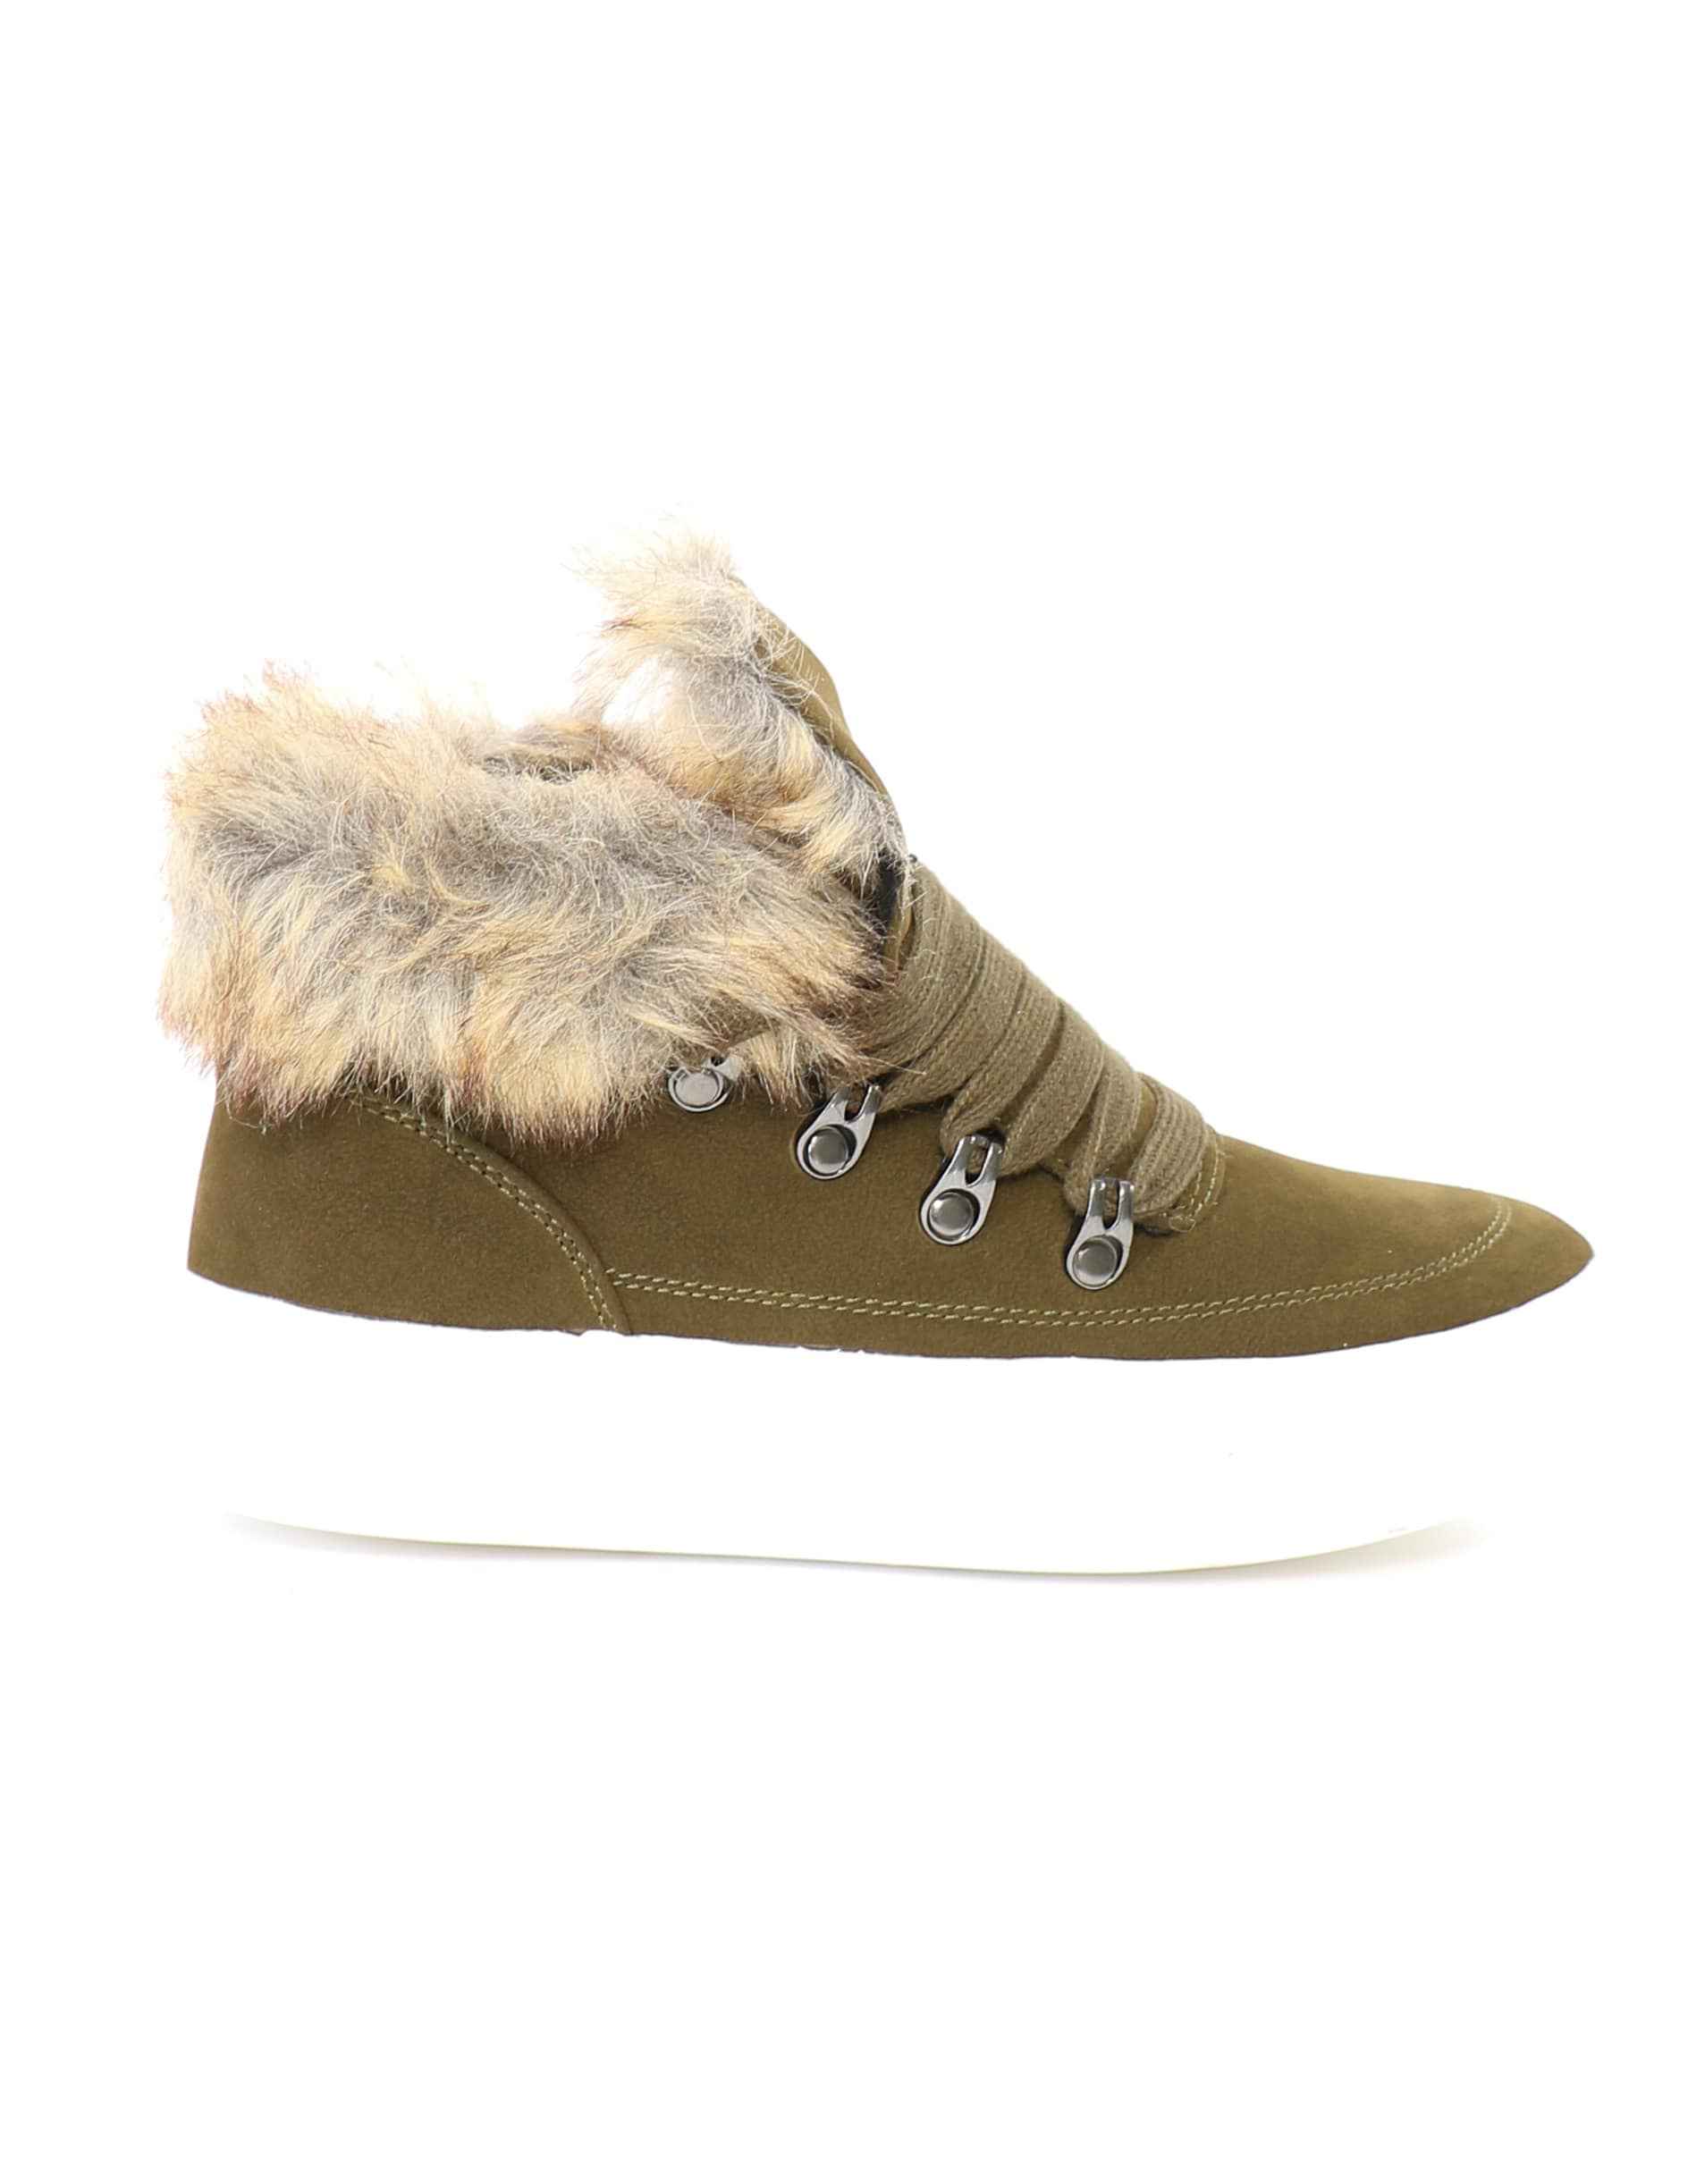 Details on the olive green faux fur trim sneakers on white background - elle bleu shoes